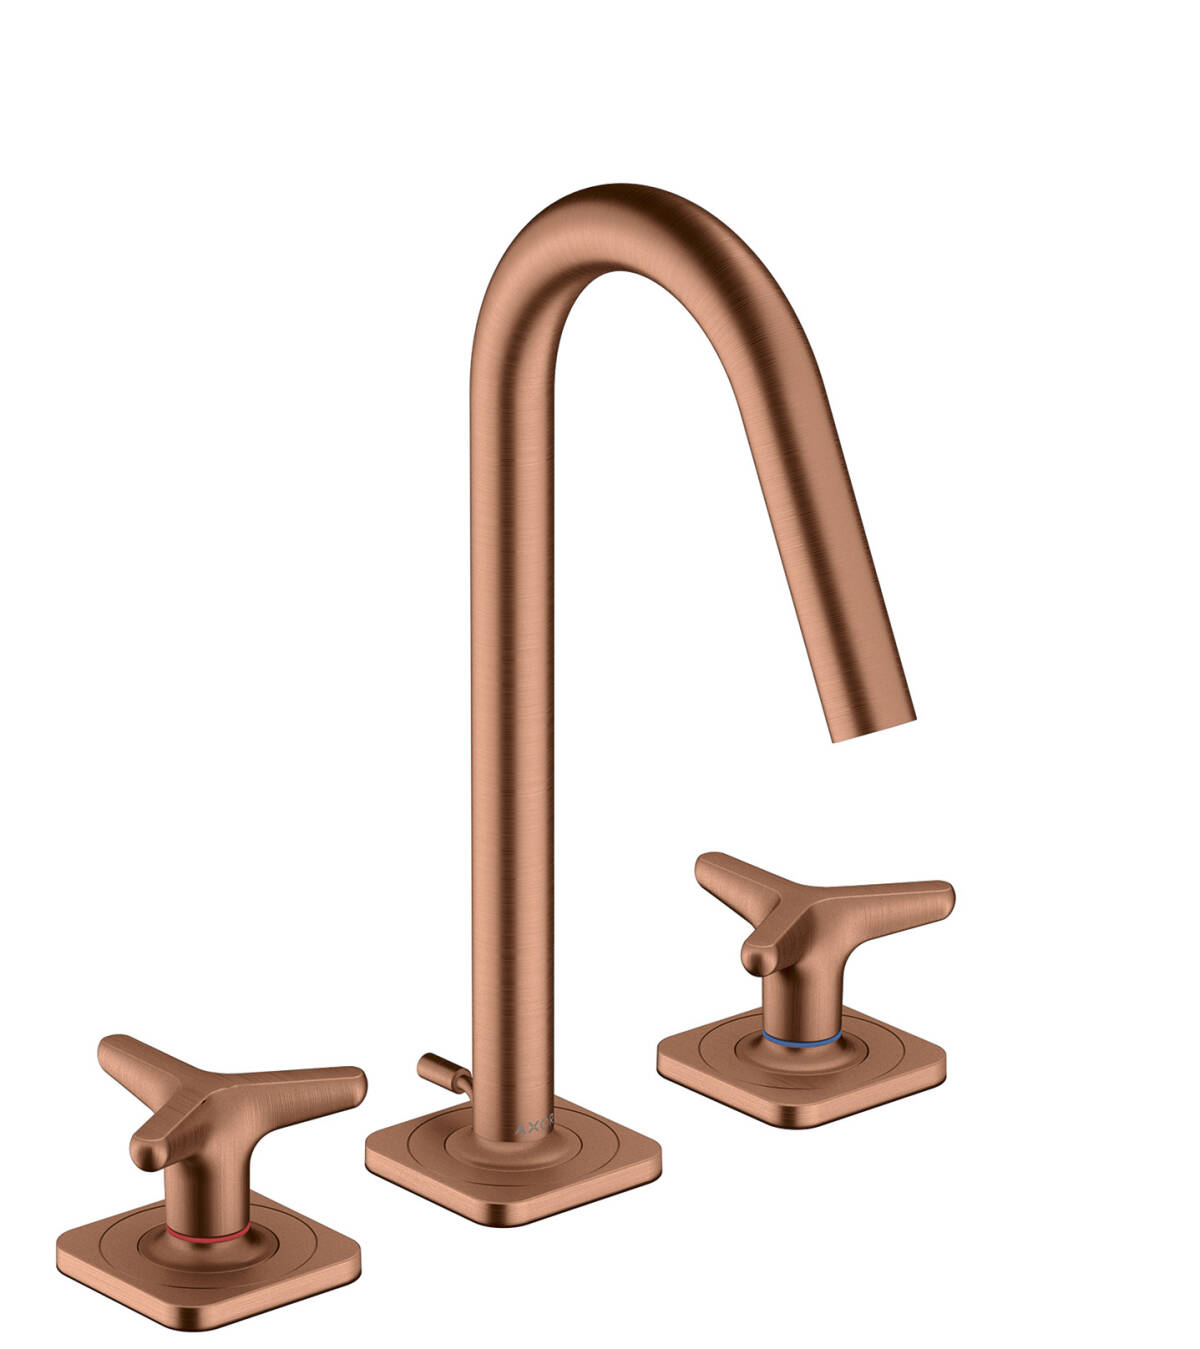 3-hole basin mixer 160 with star handles, escutcheons and pop-up waste set, Brushed Red Gold, 34135310